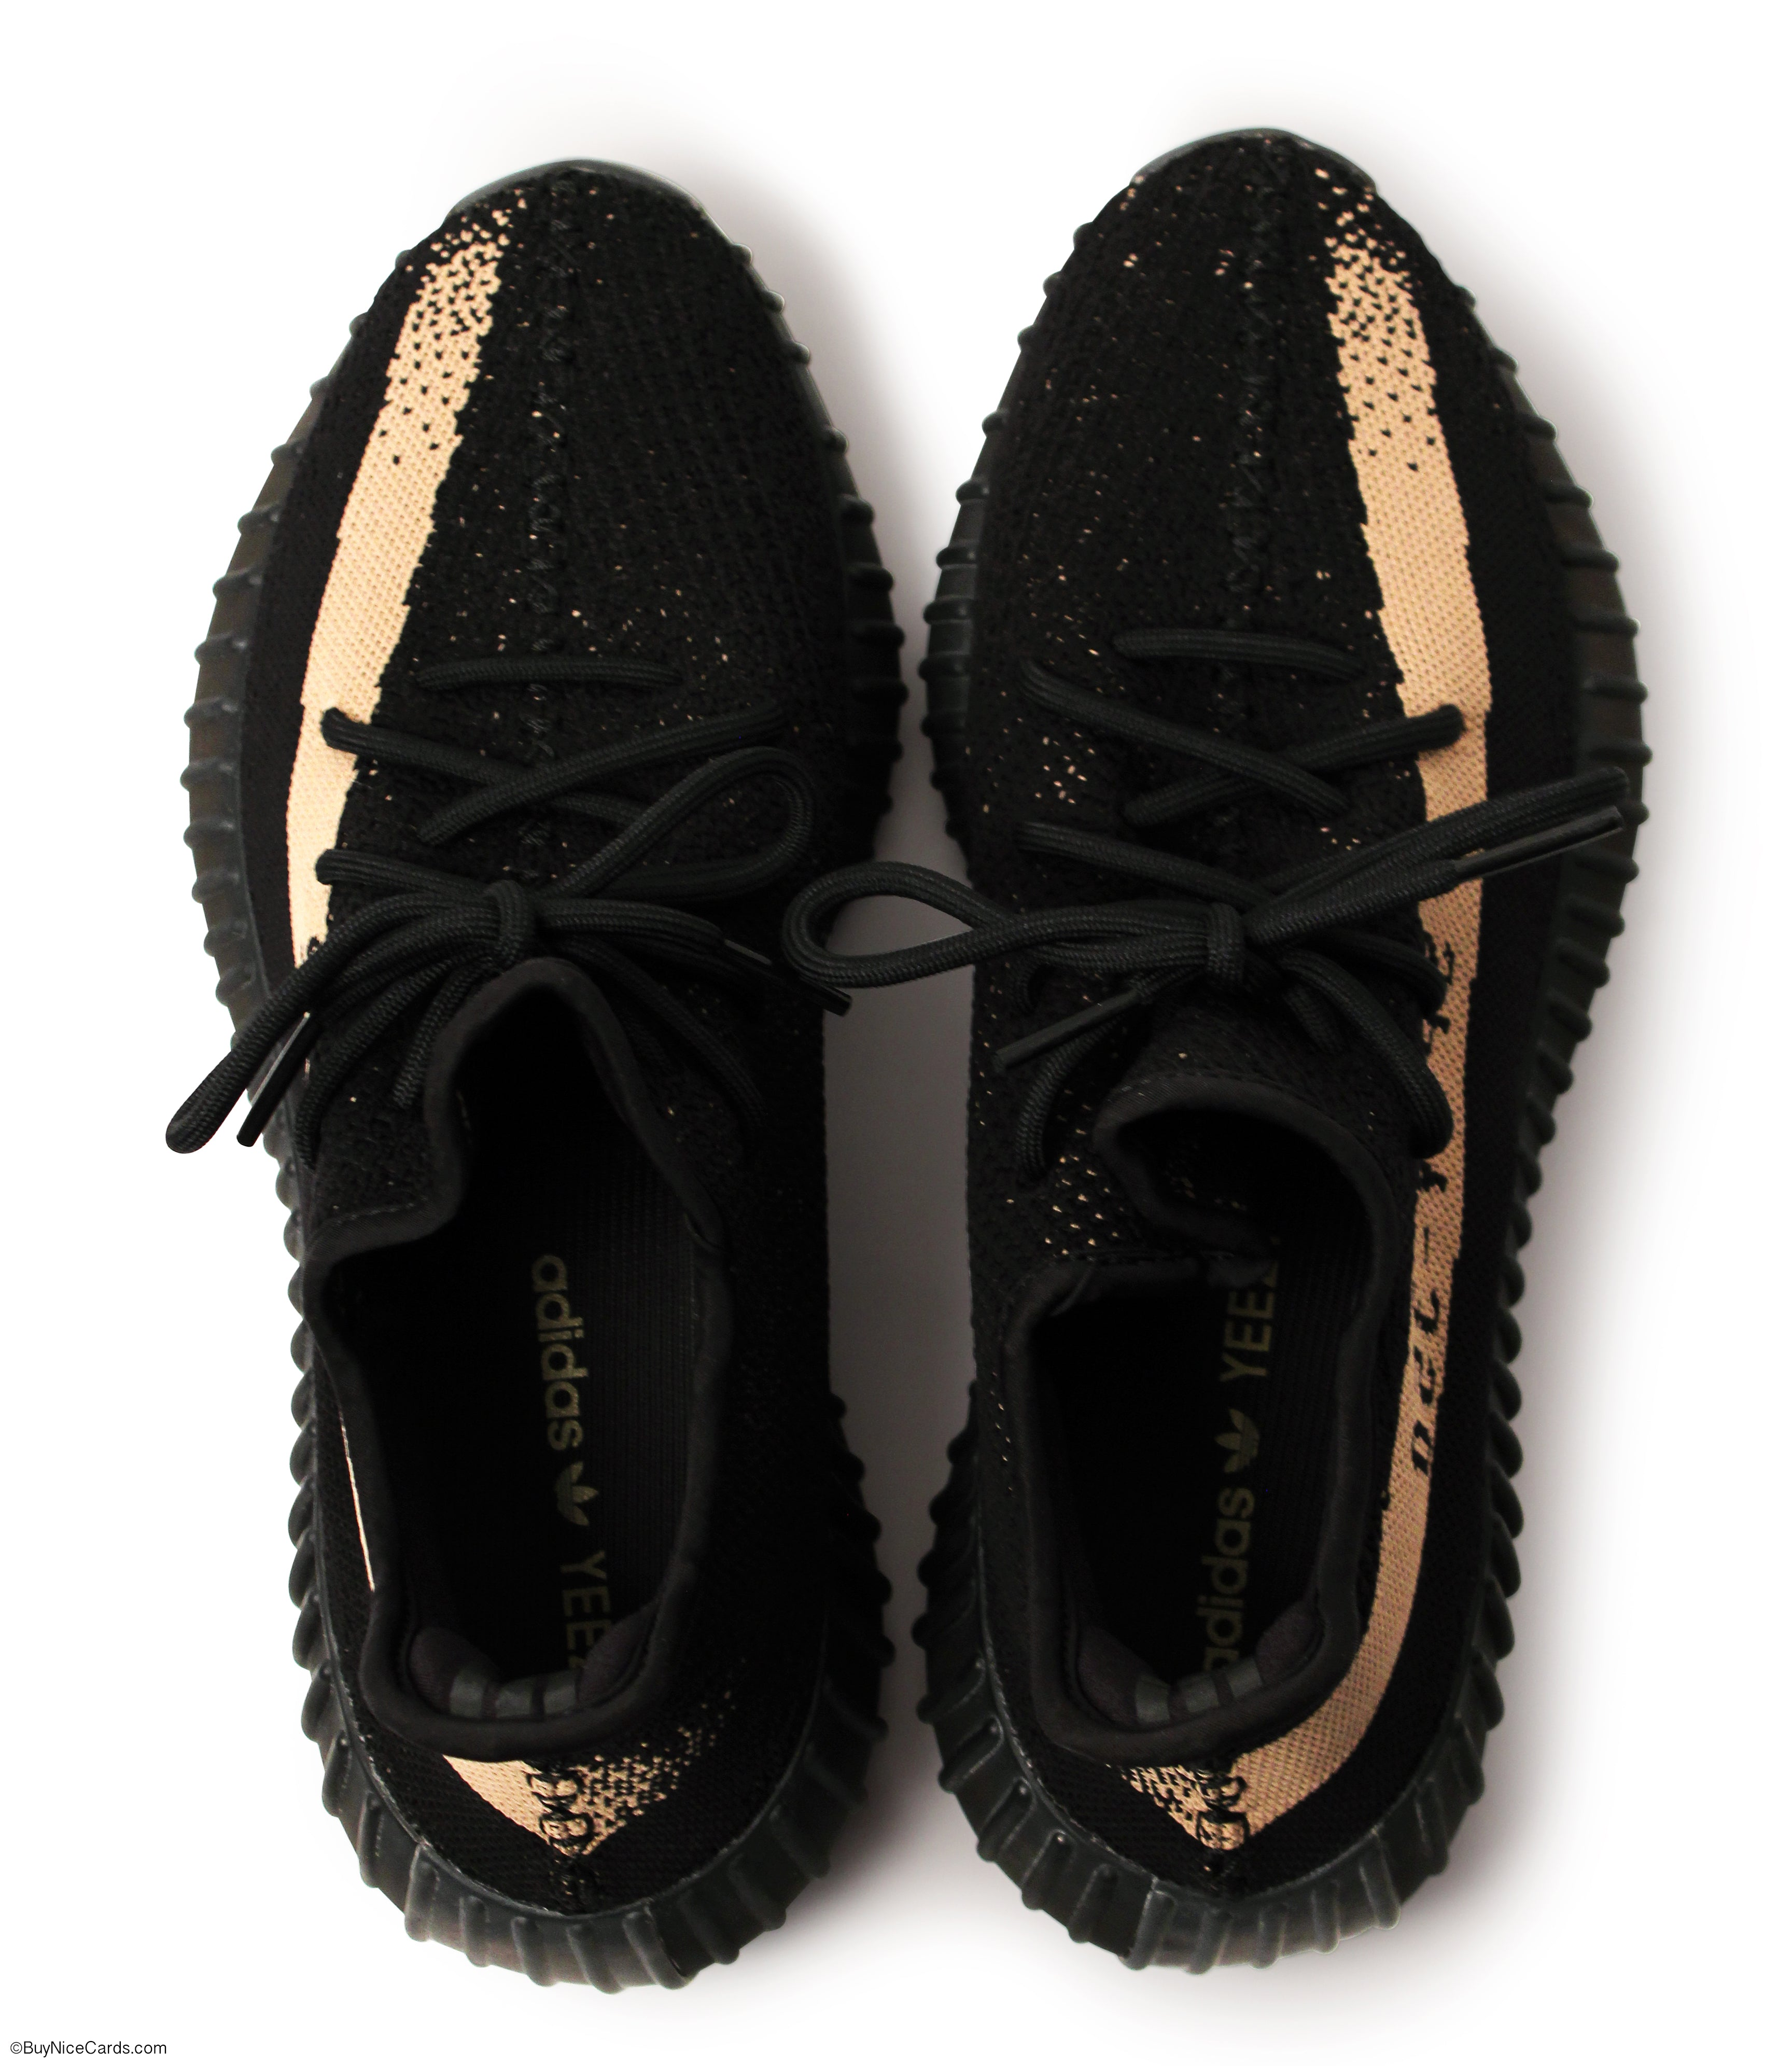 ac3c103d08d 2016 Adidas Kanye West Yeezy Boost 350 V2 Core Black   Green Olive BY9611  VNDS Sz. 10.5